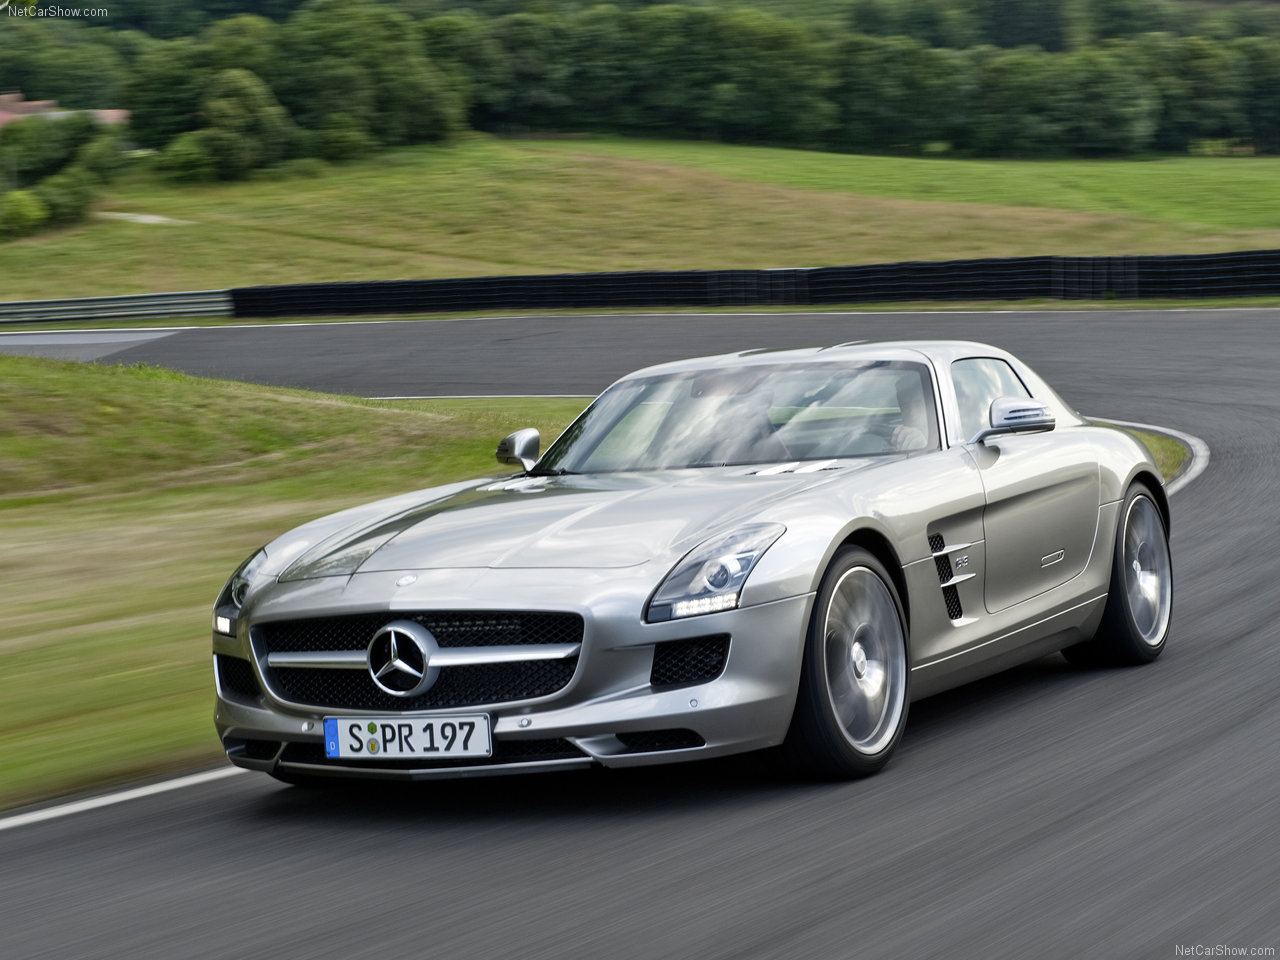 Wallpapers hd for mac mercedes benz sls e63 amg wallpaper for Mercedes benz amg 6 3